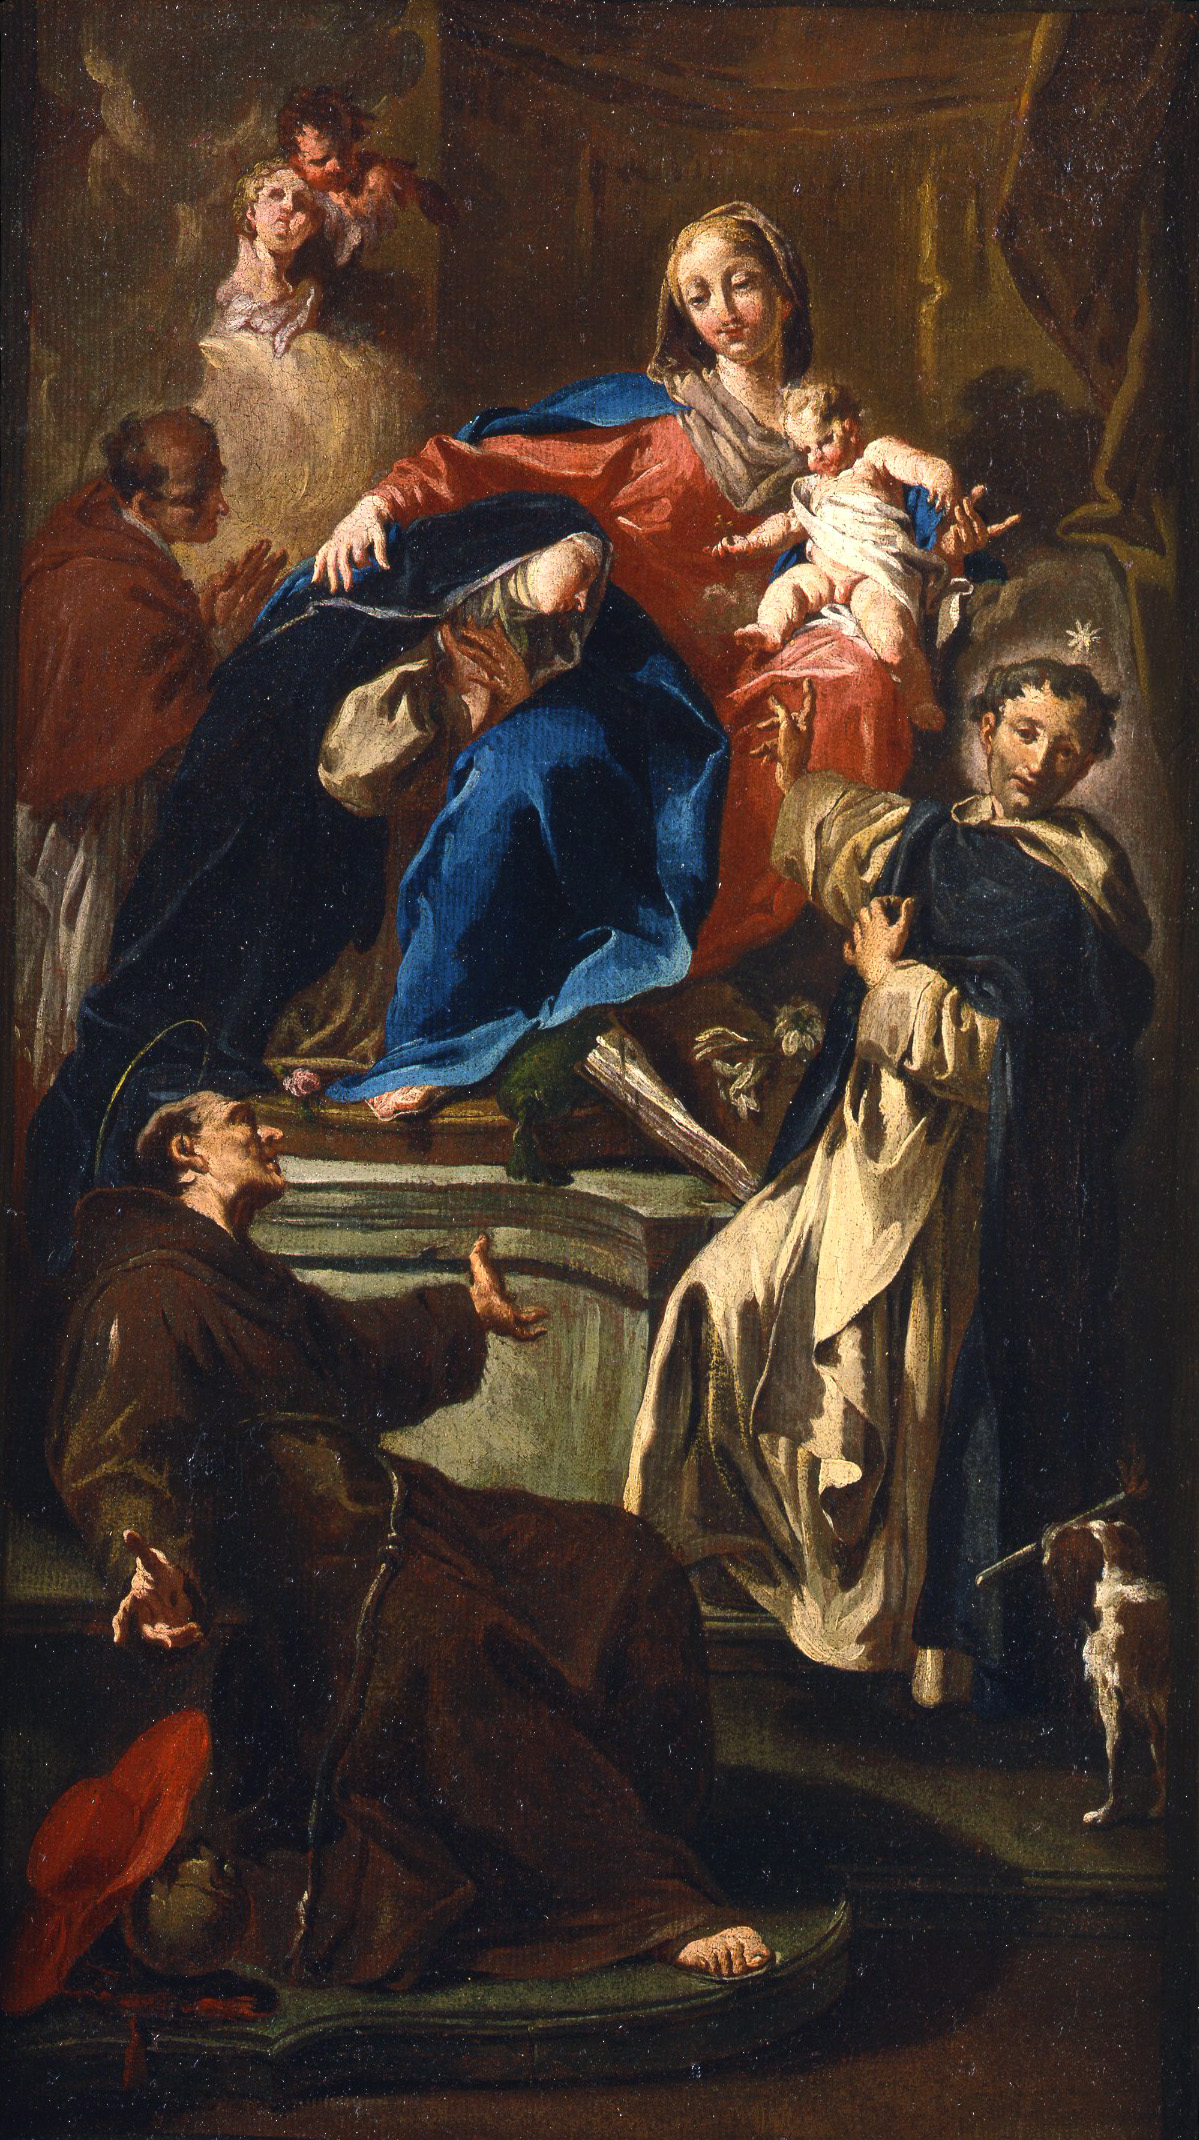 The Madonna and Child Enthroned wit Saints Rose of Lima, Dominic, Bonaventure and Charles Borromeo